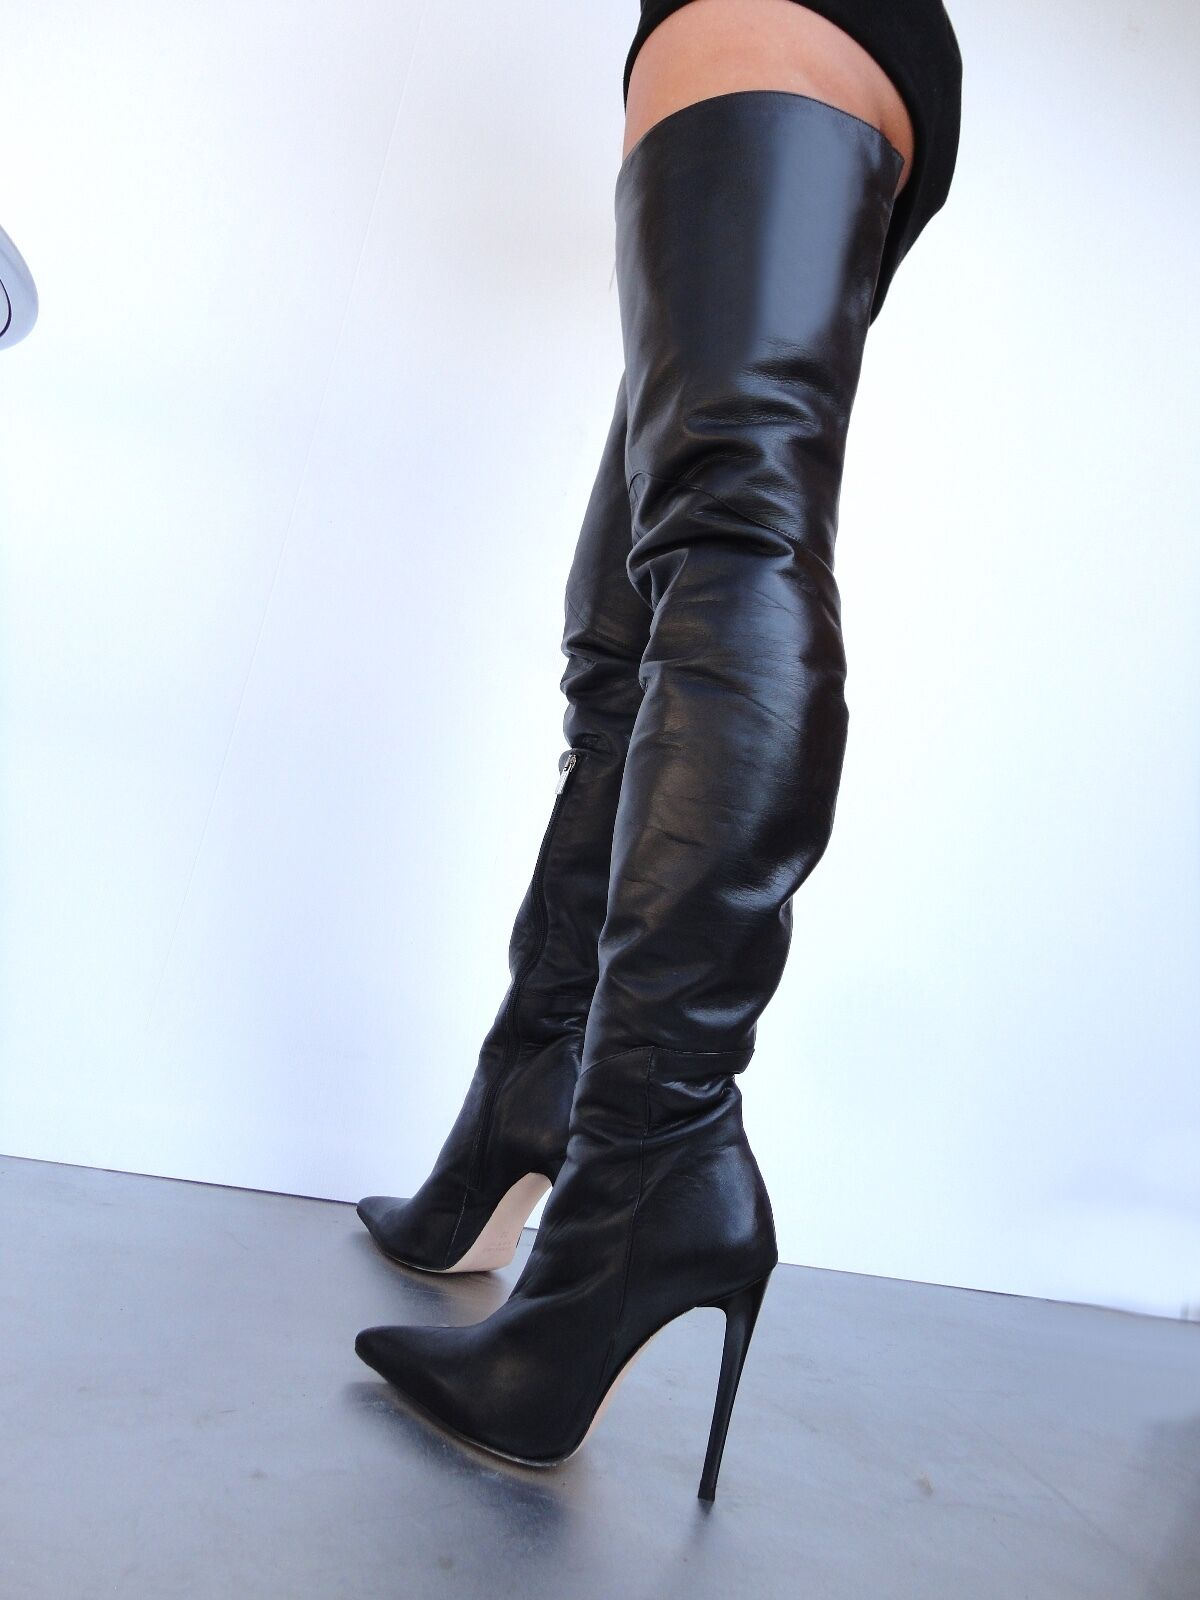 CQ COUTURE CUSTOM LUXURY OVERKNEE BOOTS NERO STIEFEL STIVALI SHOES LEATHER NERO BOOTS 40 5895cc